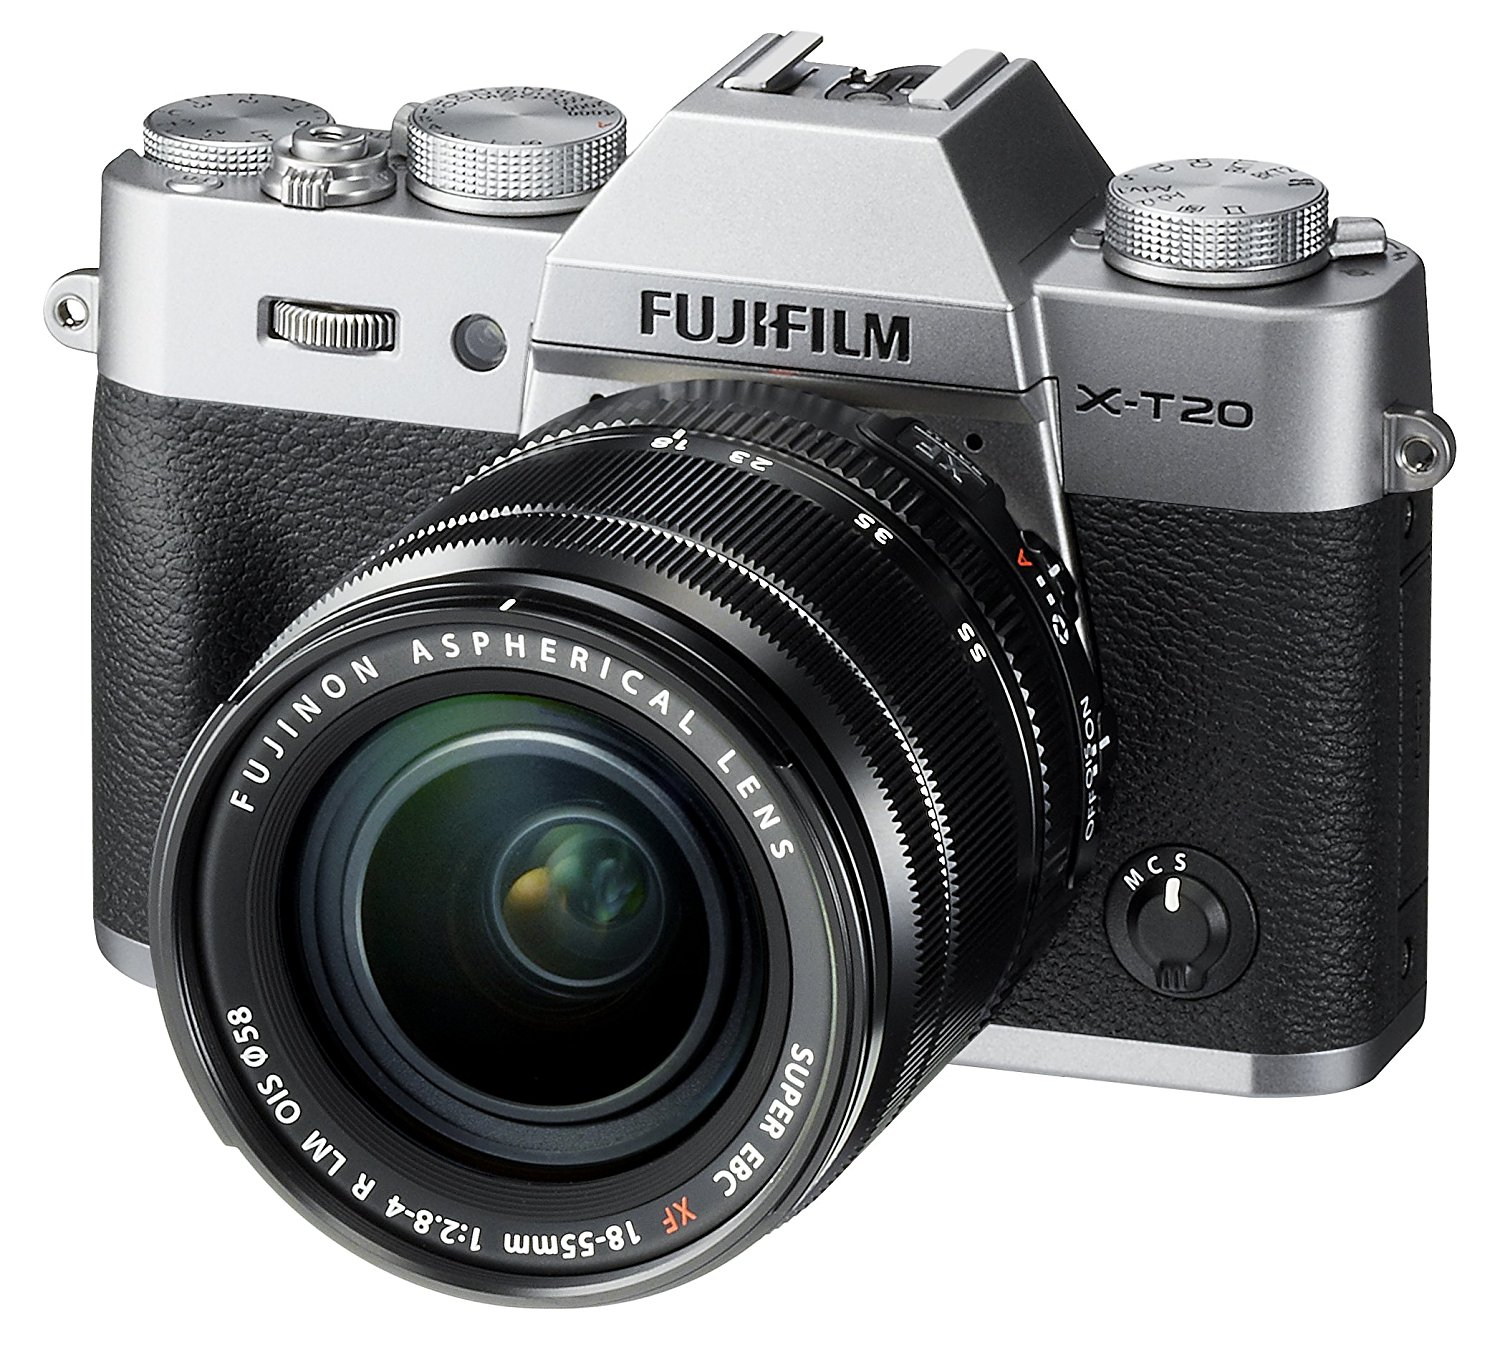 The Fuji X-T20 uses a 24MP X-Trans CMOS III sensor, which delivers gorgeous, vibrant, clean and crisp images that rival even the best dSLR cameras.